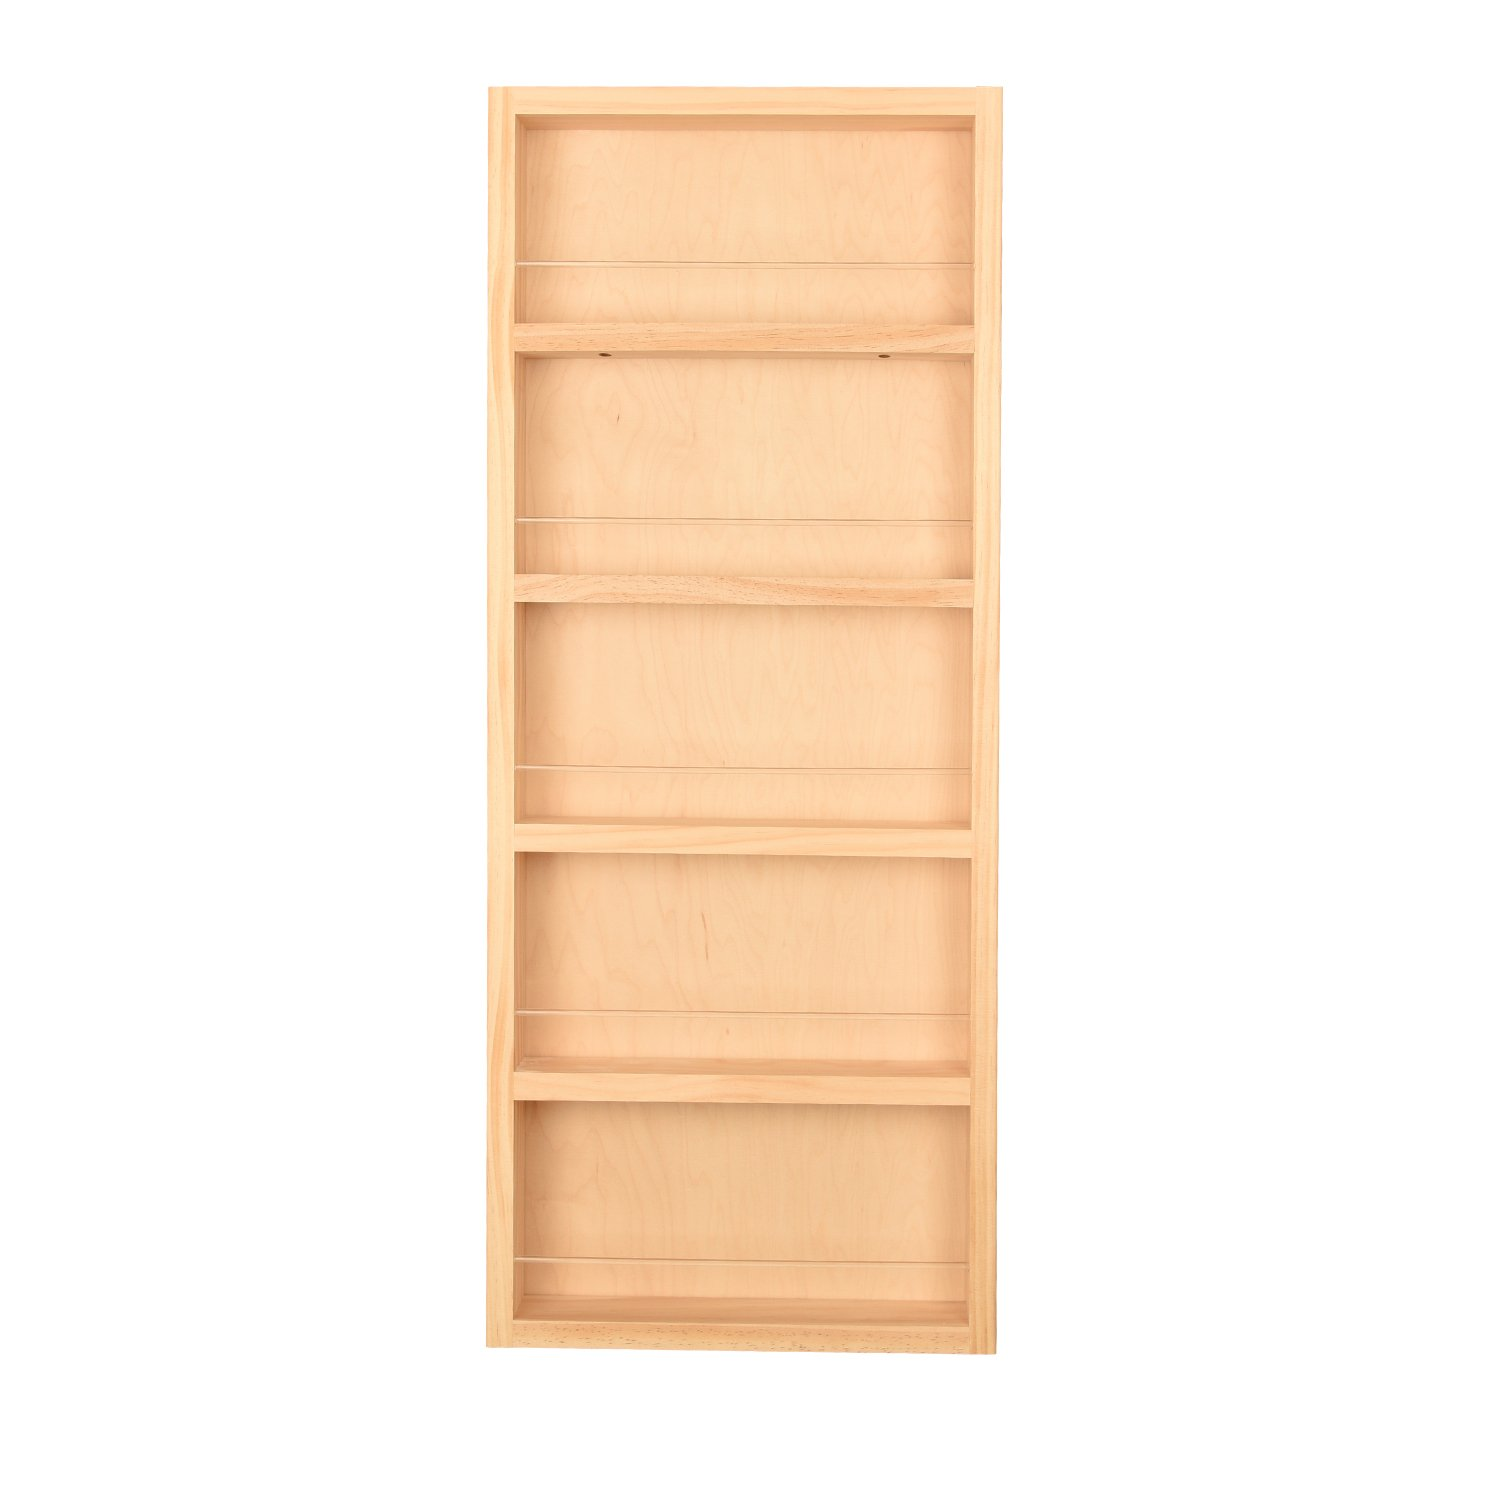 Wood Cabinets Direct Fulton Spice Rack White by Wood Cabinets Direct